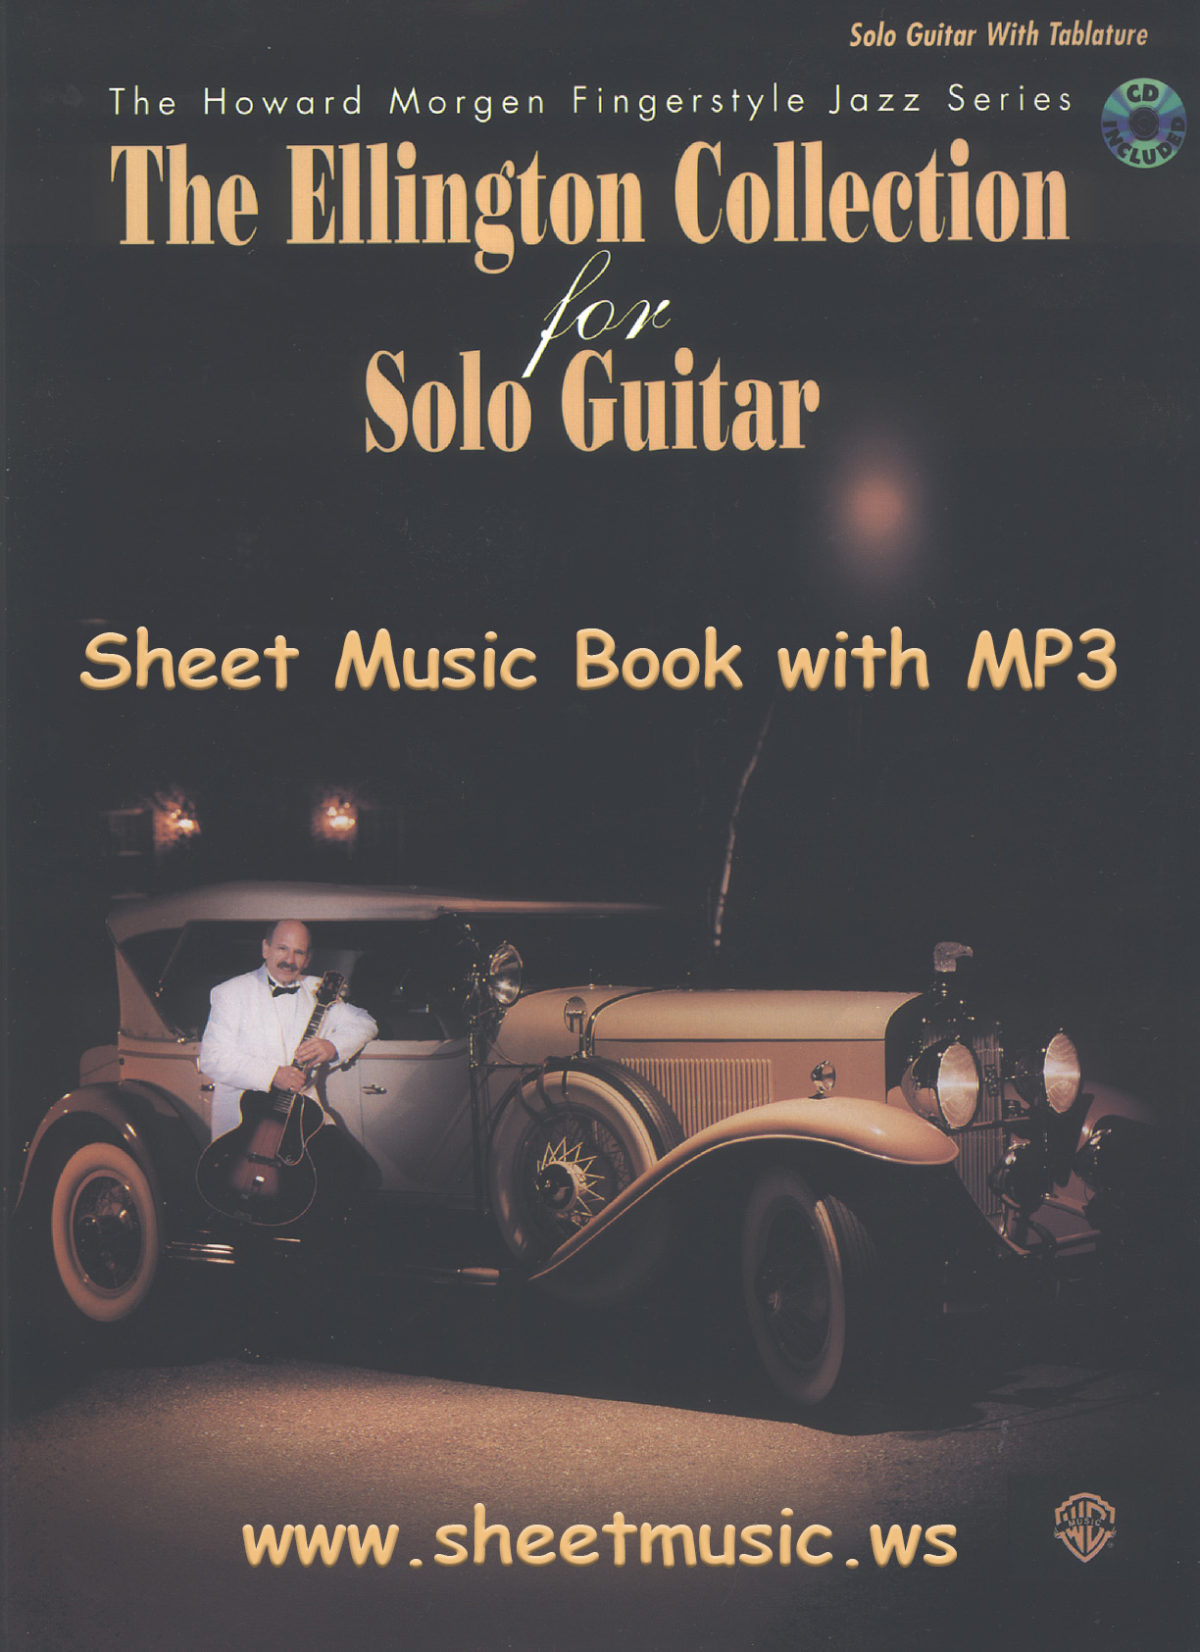 The Ellington Collection For Solo Guitar sheet music book and MP3